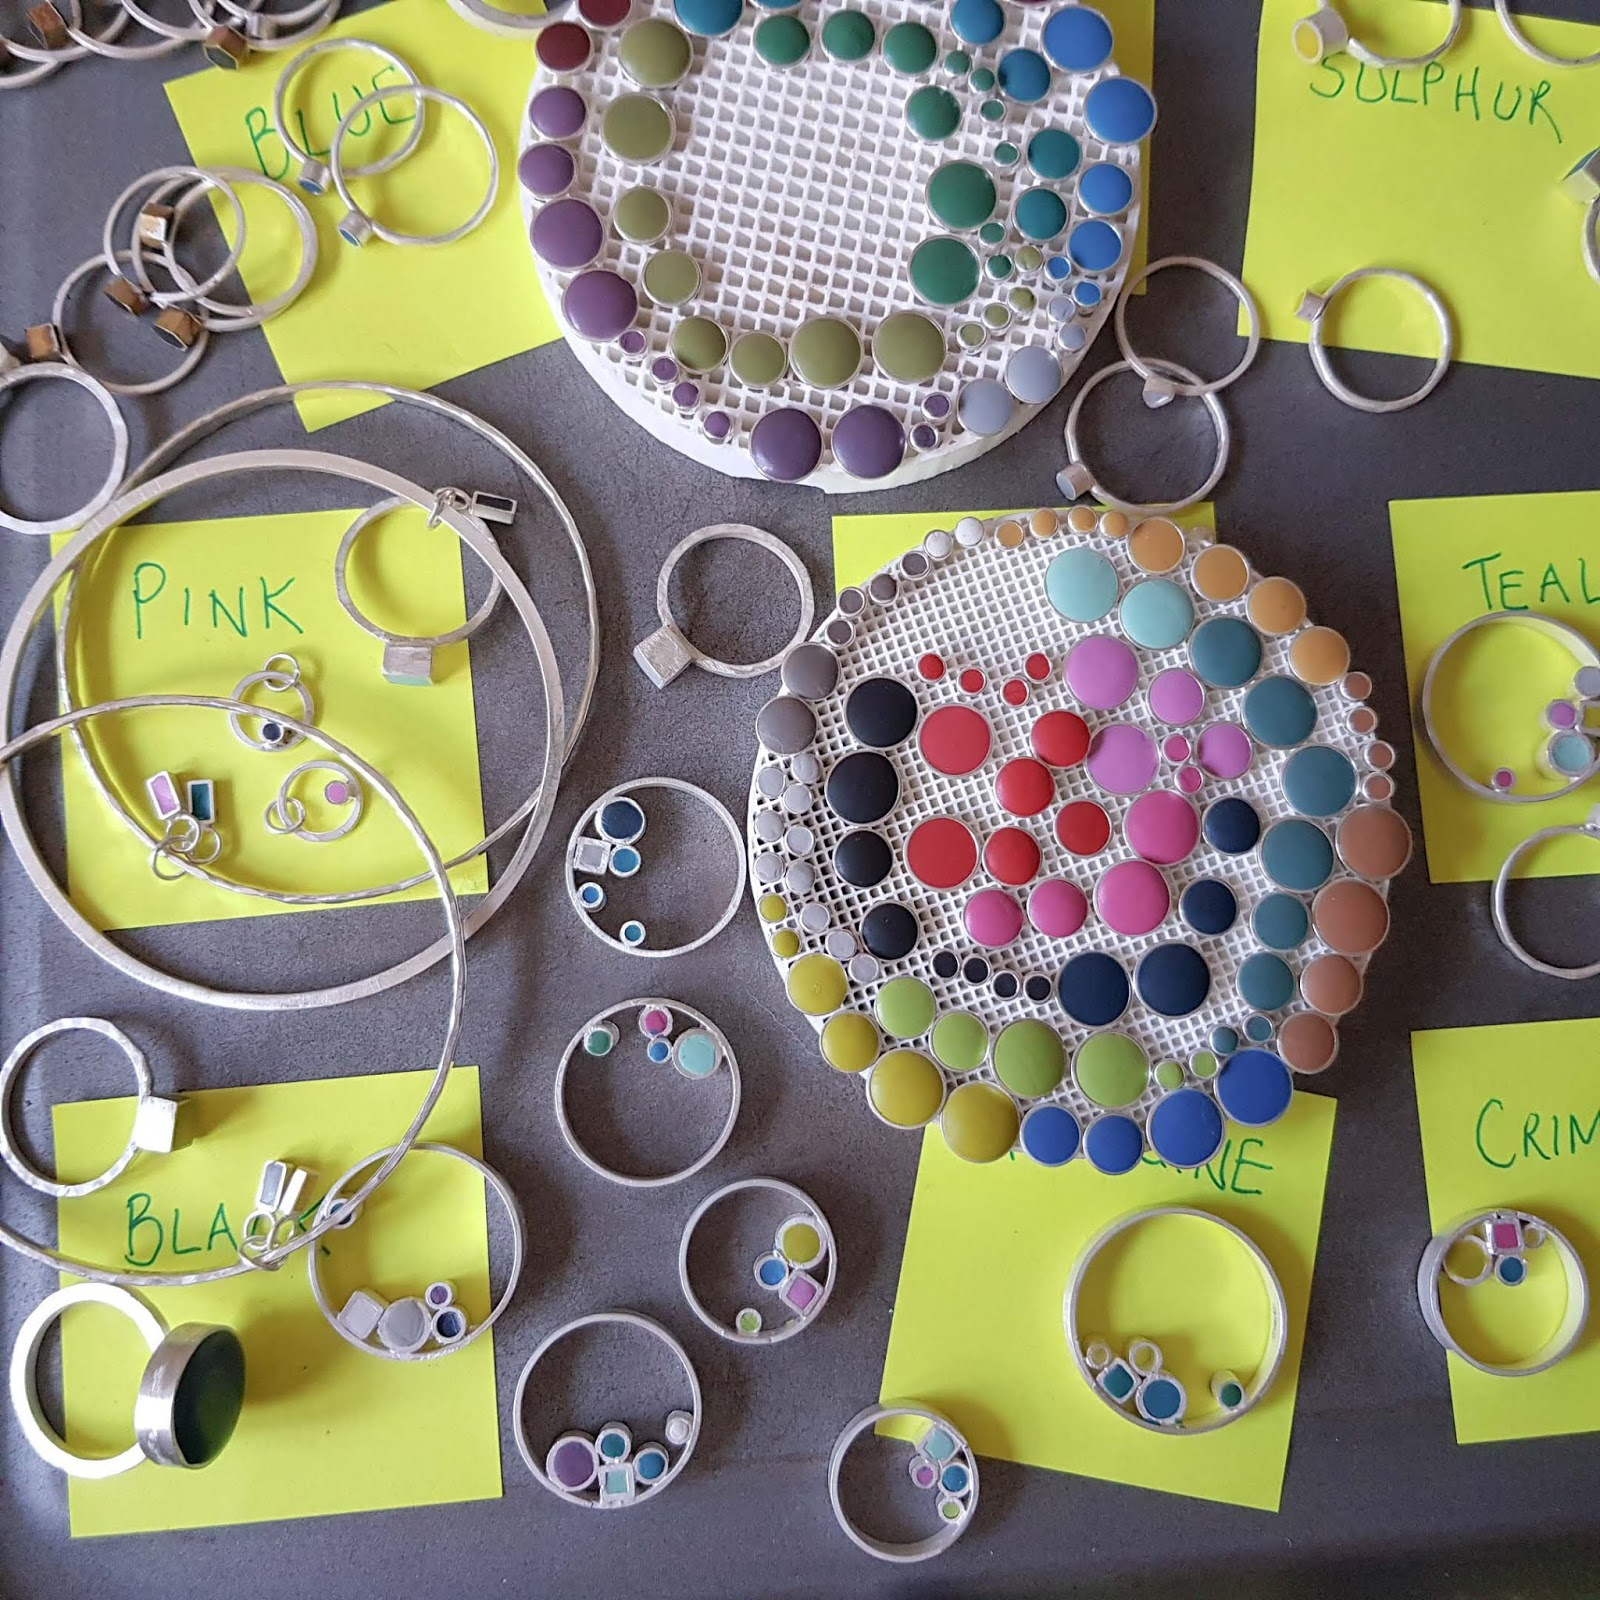 Dotty about colour: Clare experiments and test runs her designs before finalising them